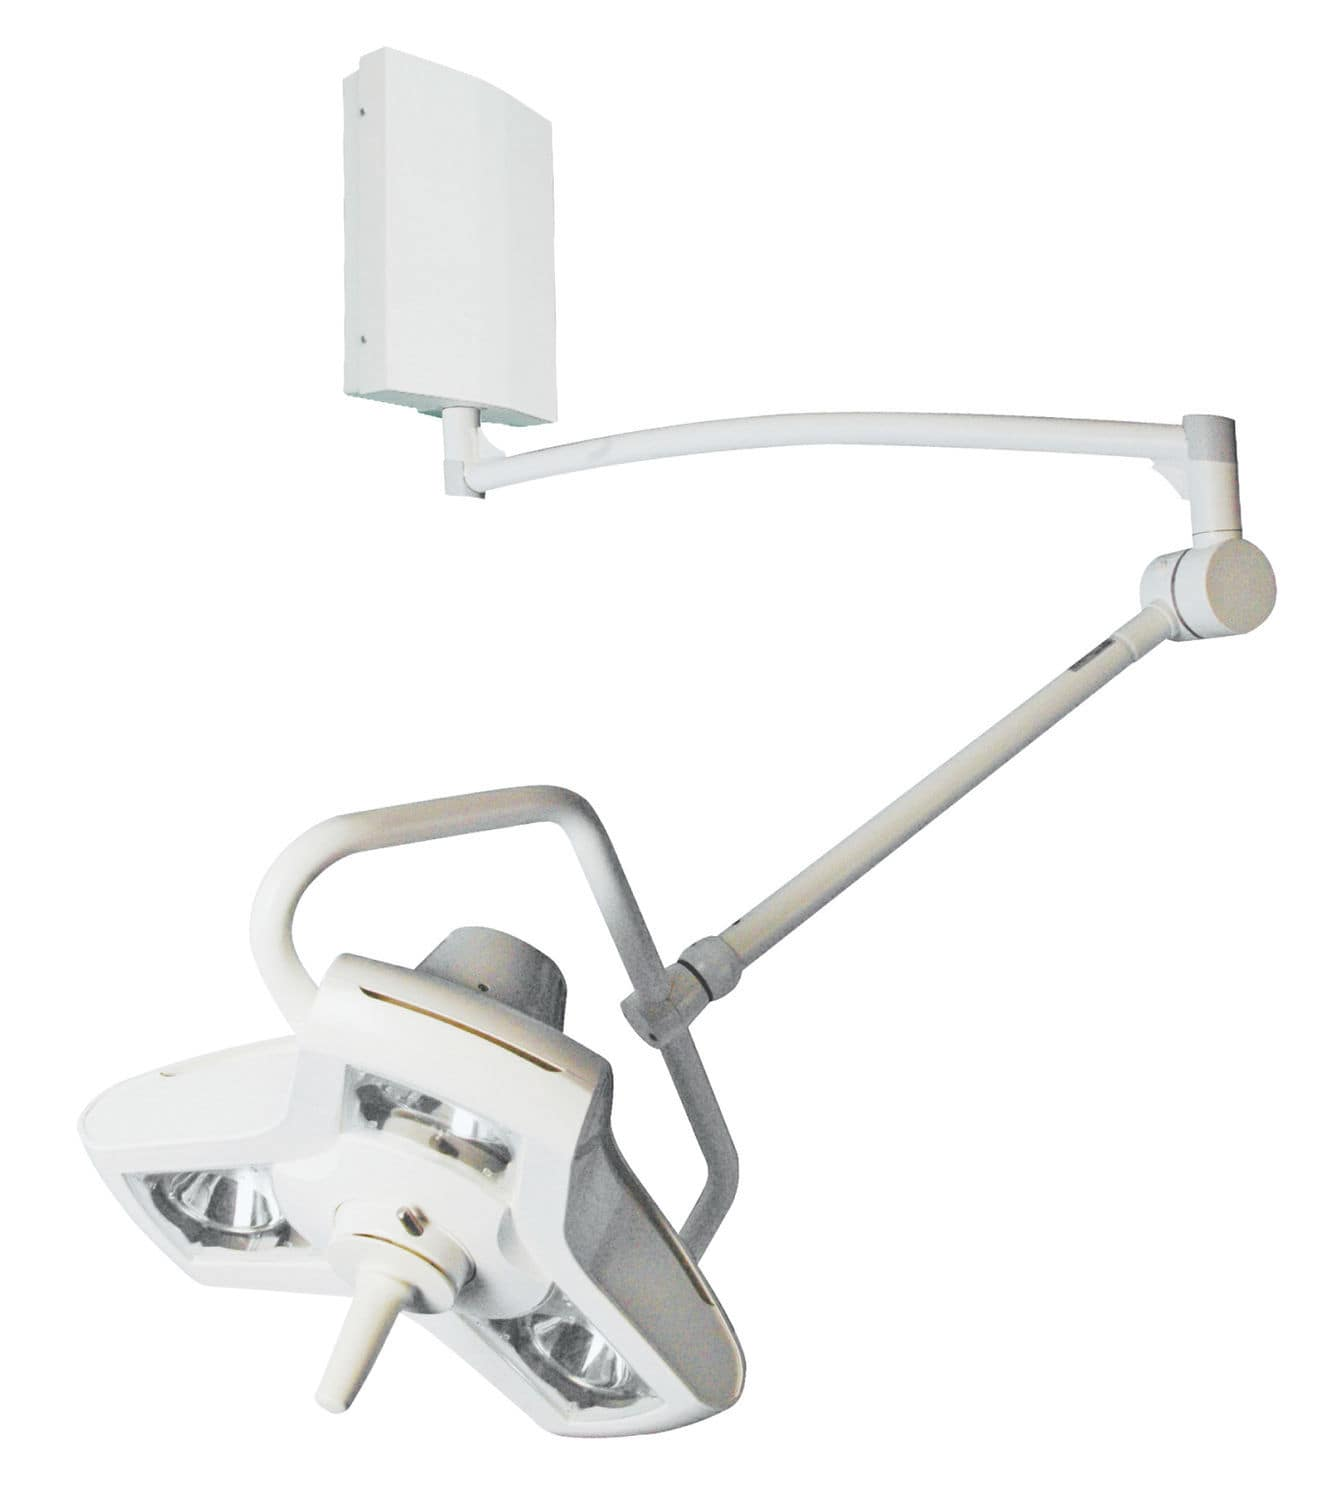 Compact surgical light / ceiling-mounted / halogen - AIM-100